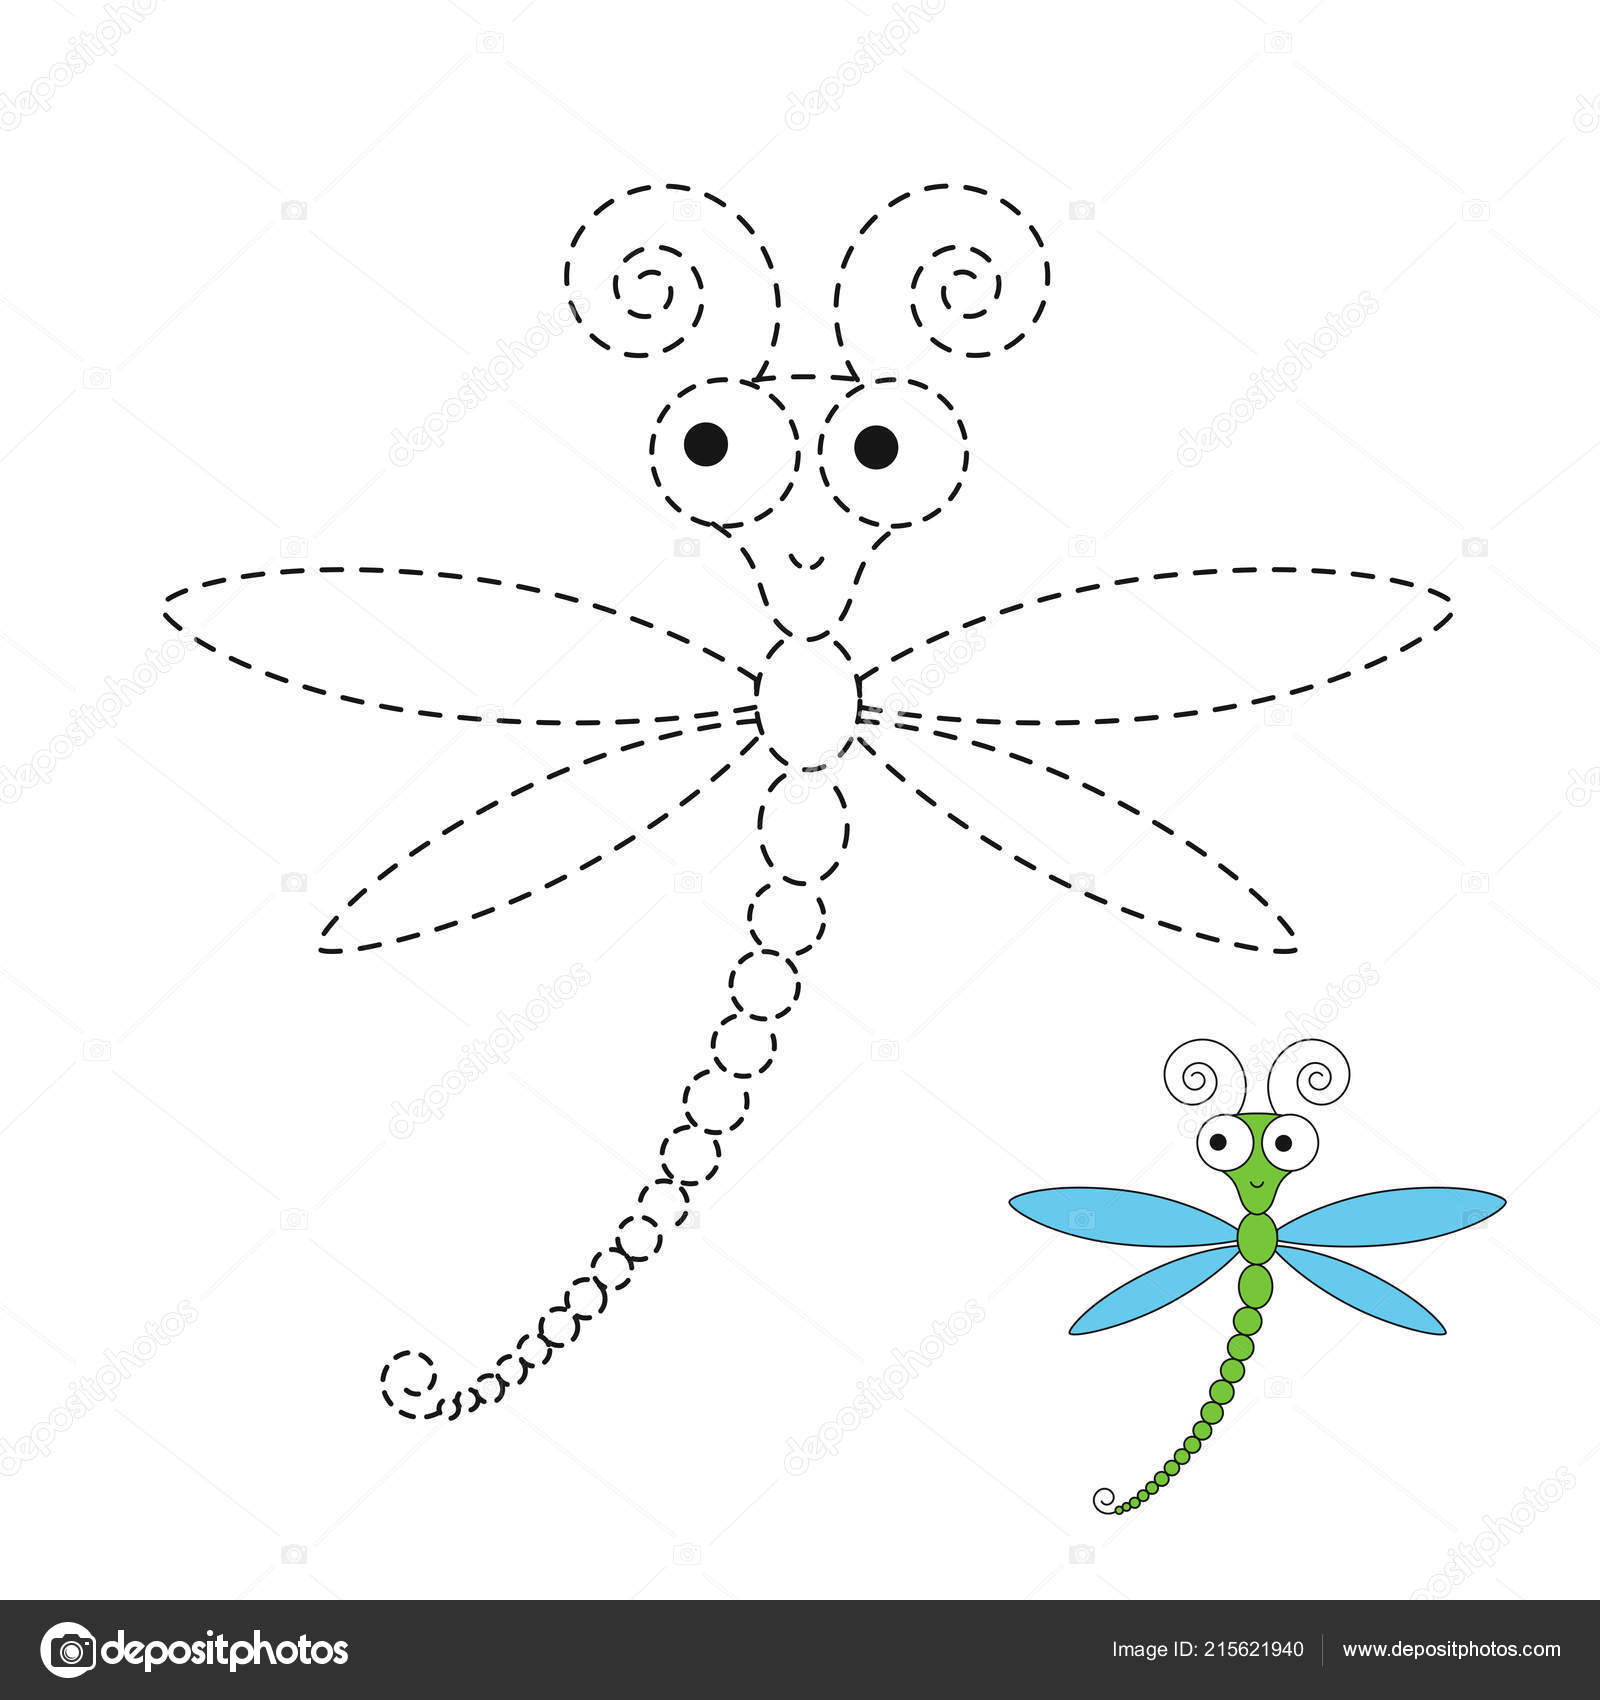 Drawings Easy Of Dragonflies